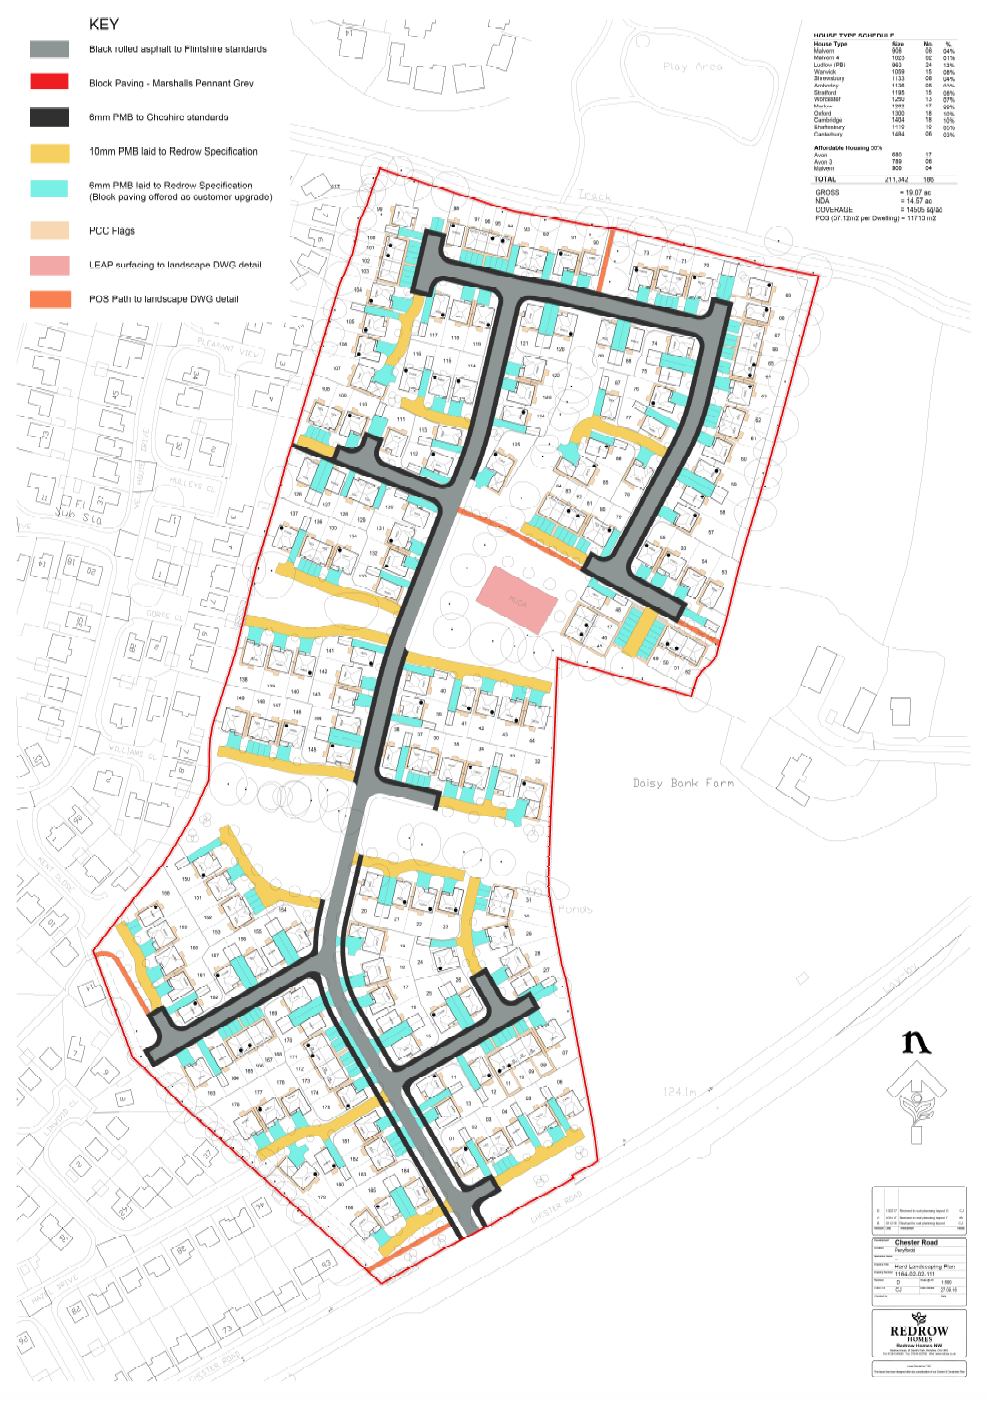 This shows the footpaths (red) and road layout